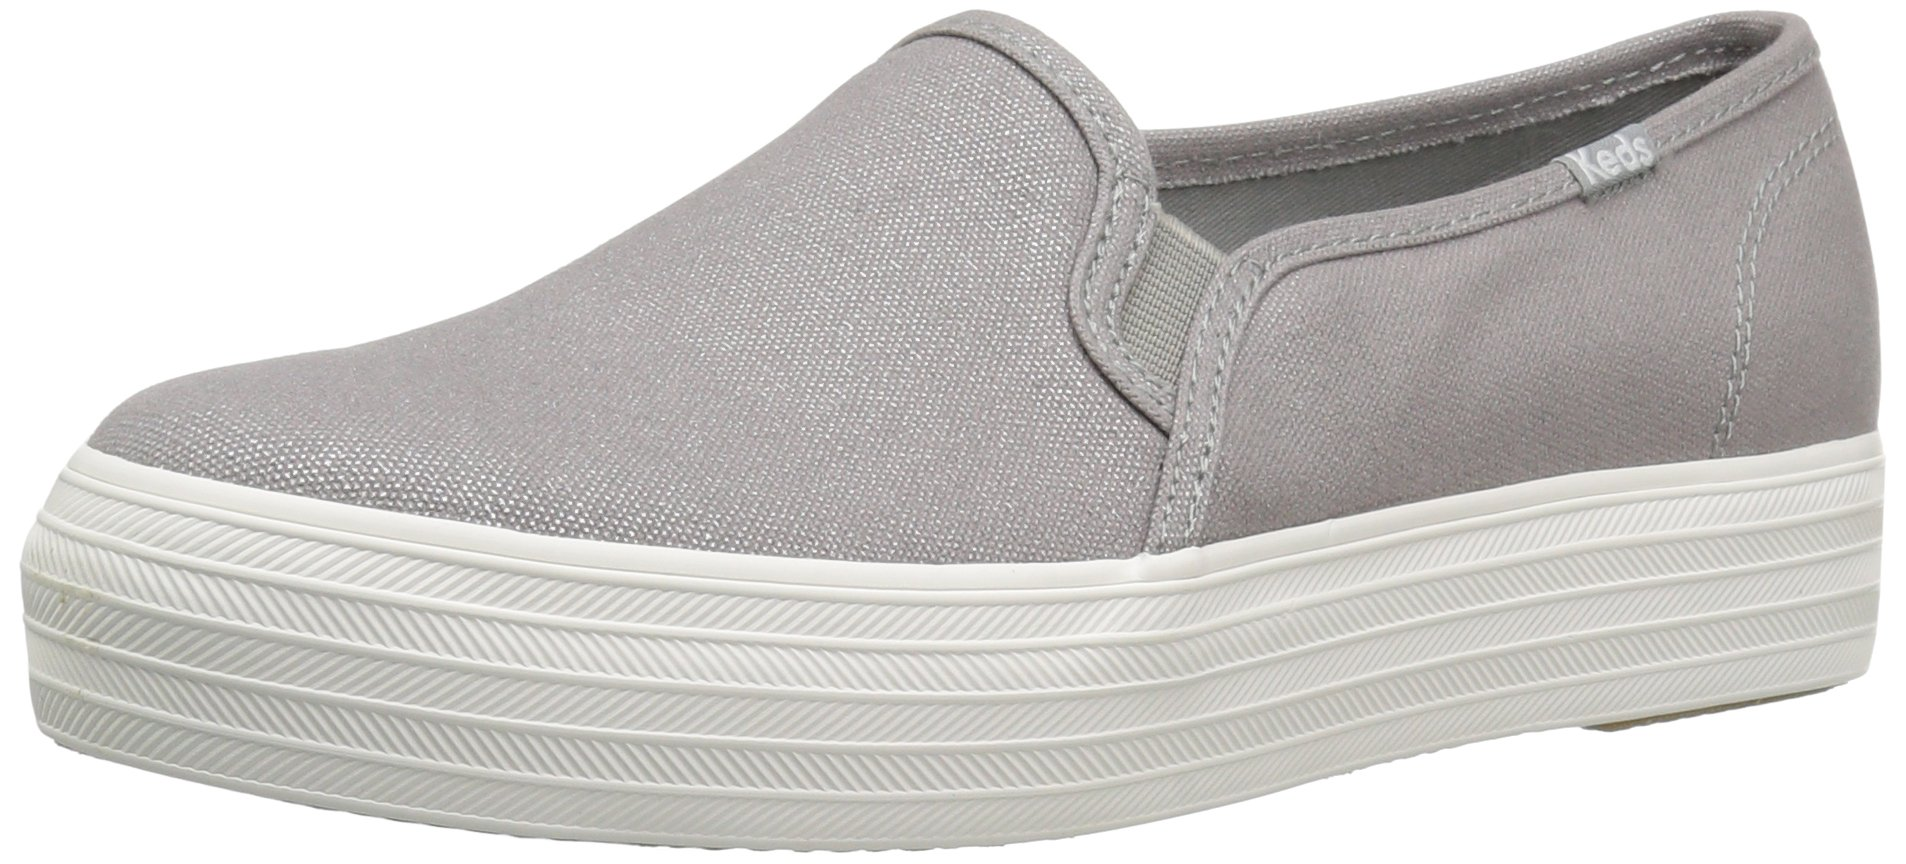 Keds Women's Triple Decker Metallic Canvas Fashion Sneaker, Silver, 9 M US